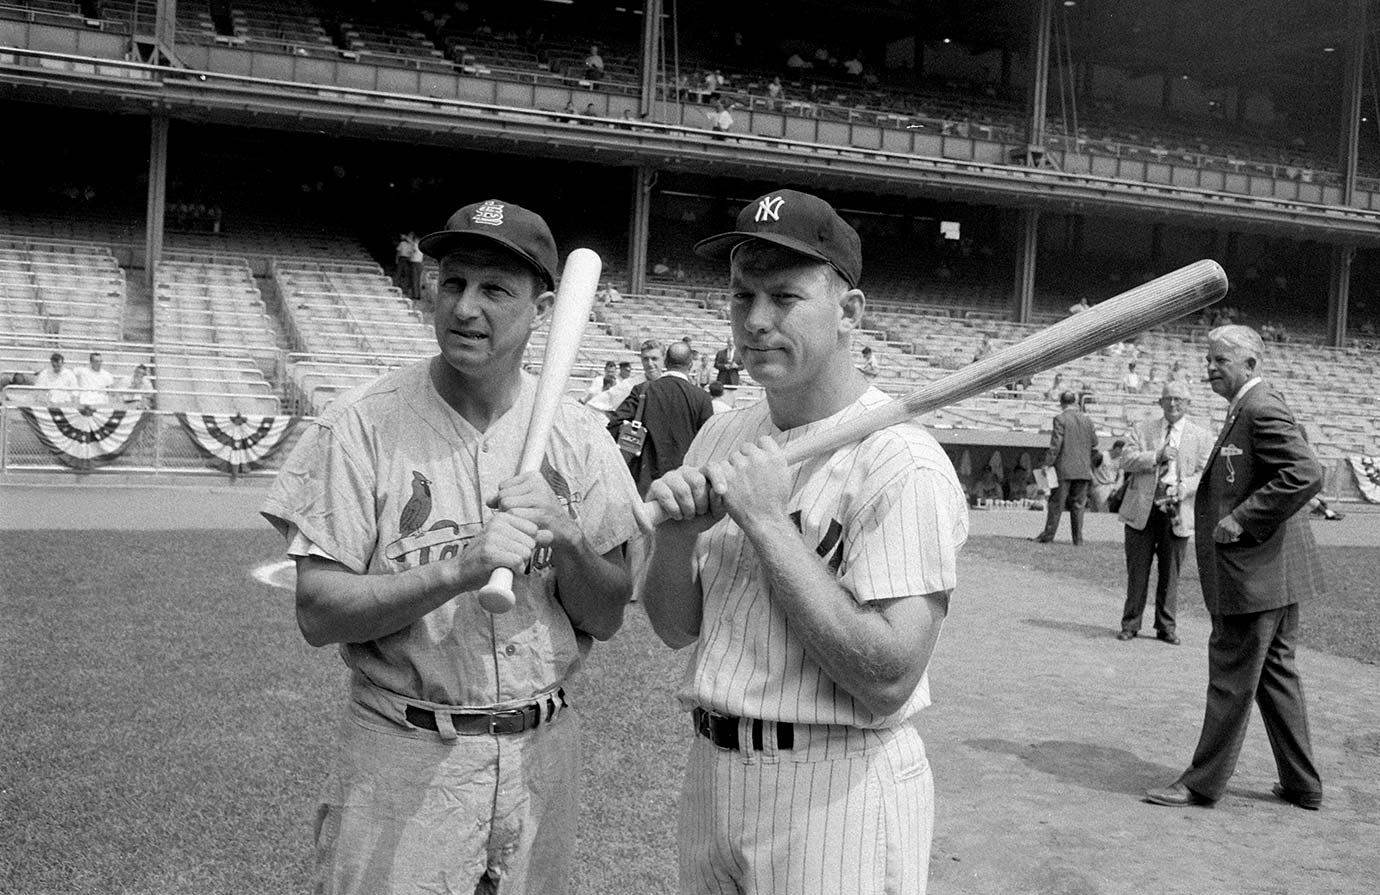 July 13, 1960 — MLB All-Star Game